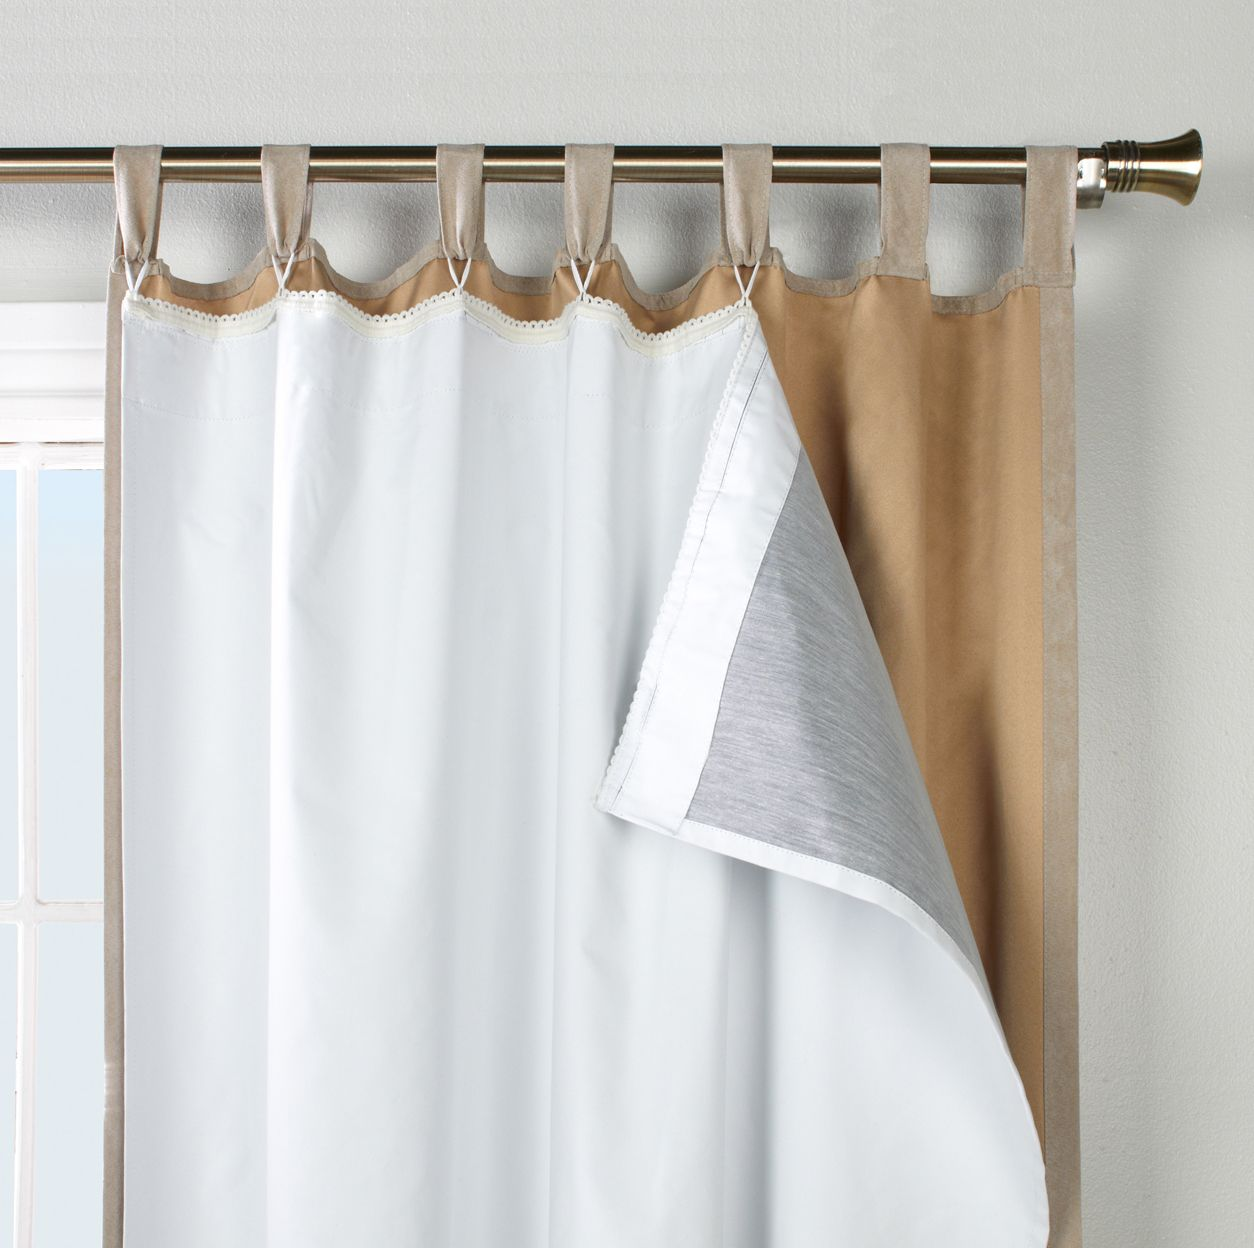 How To Make Your Own Tab Top Curtains In 2020 Insulated Curtains Stylish Curtains Insulated Blackout Curtains